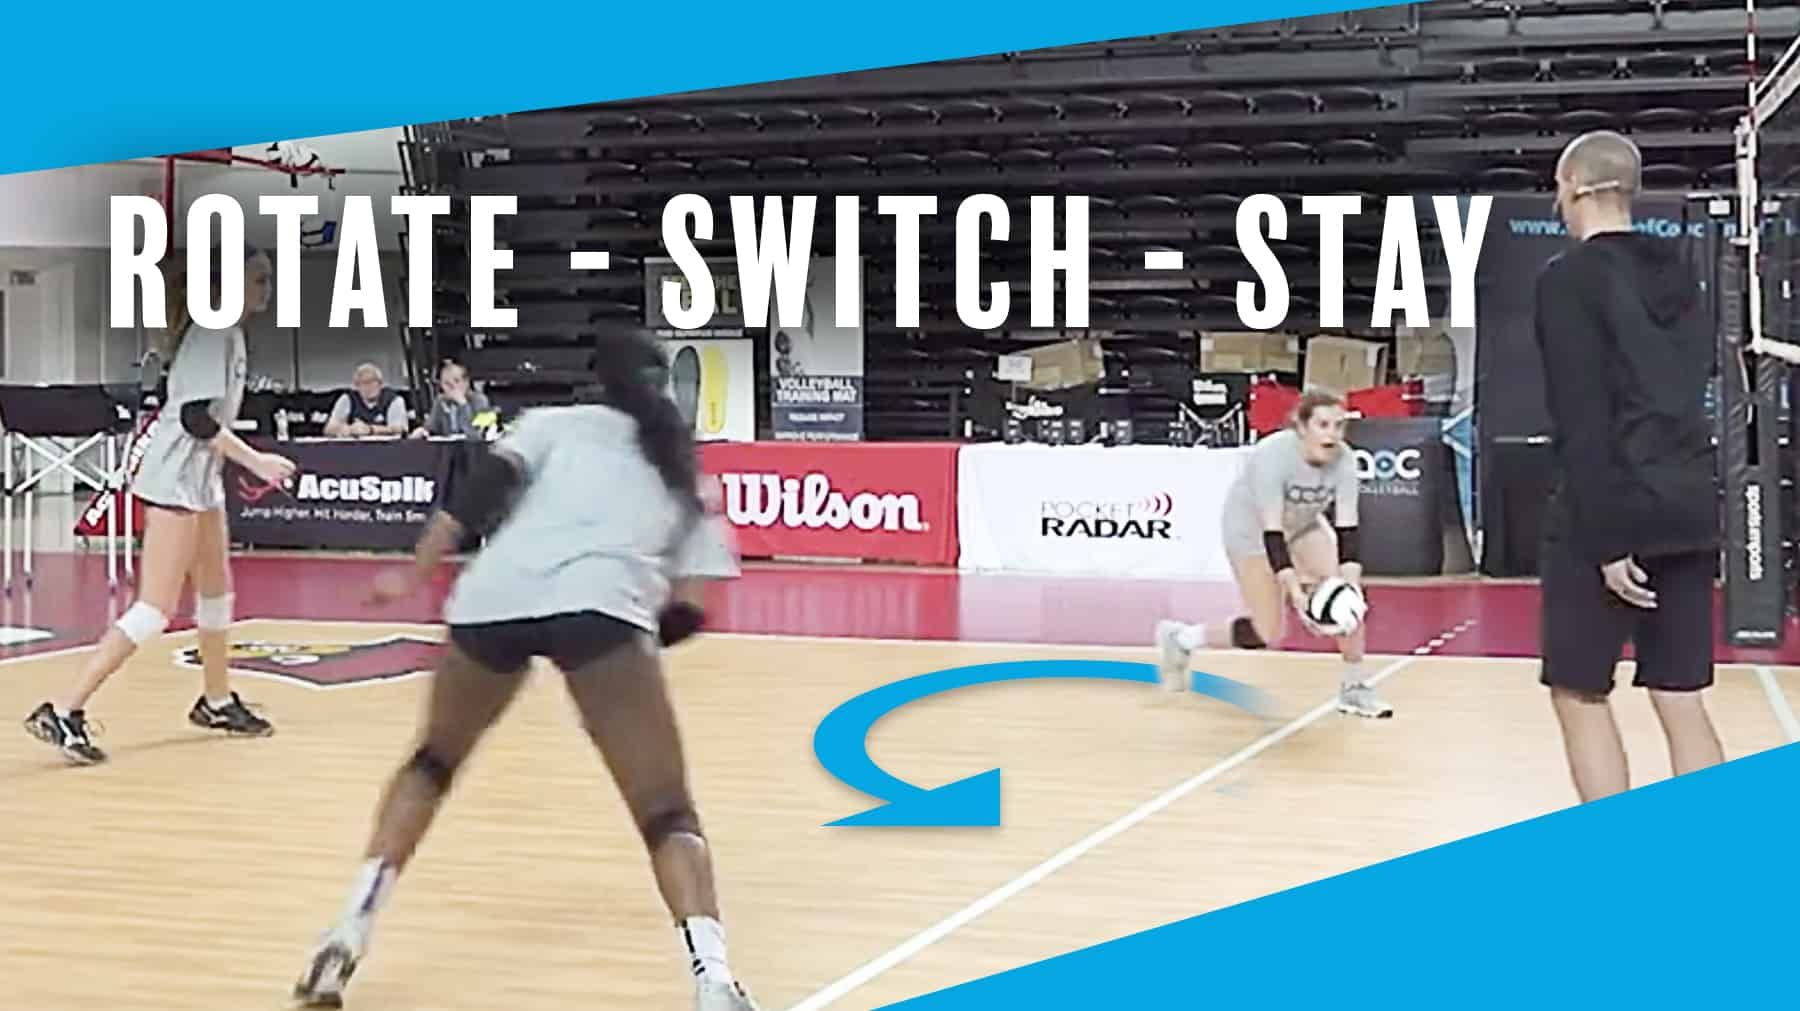 Rotate Switch Stay Defensive Drill To Improve Movement The Art Of Coaching Volleyball Volleyball Drills Volleyball Workouts Coaching Volleyball